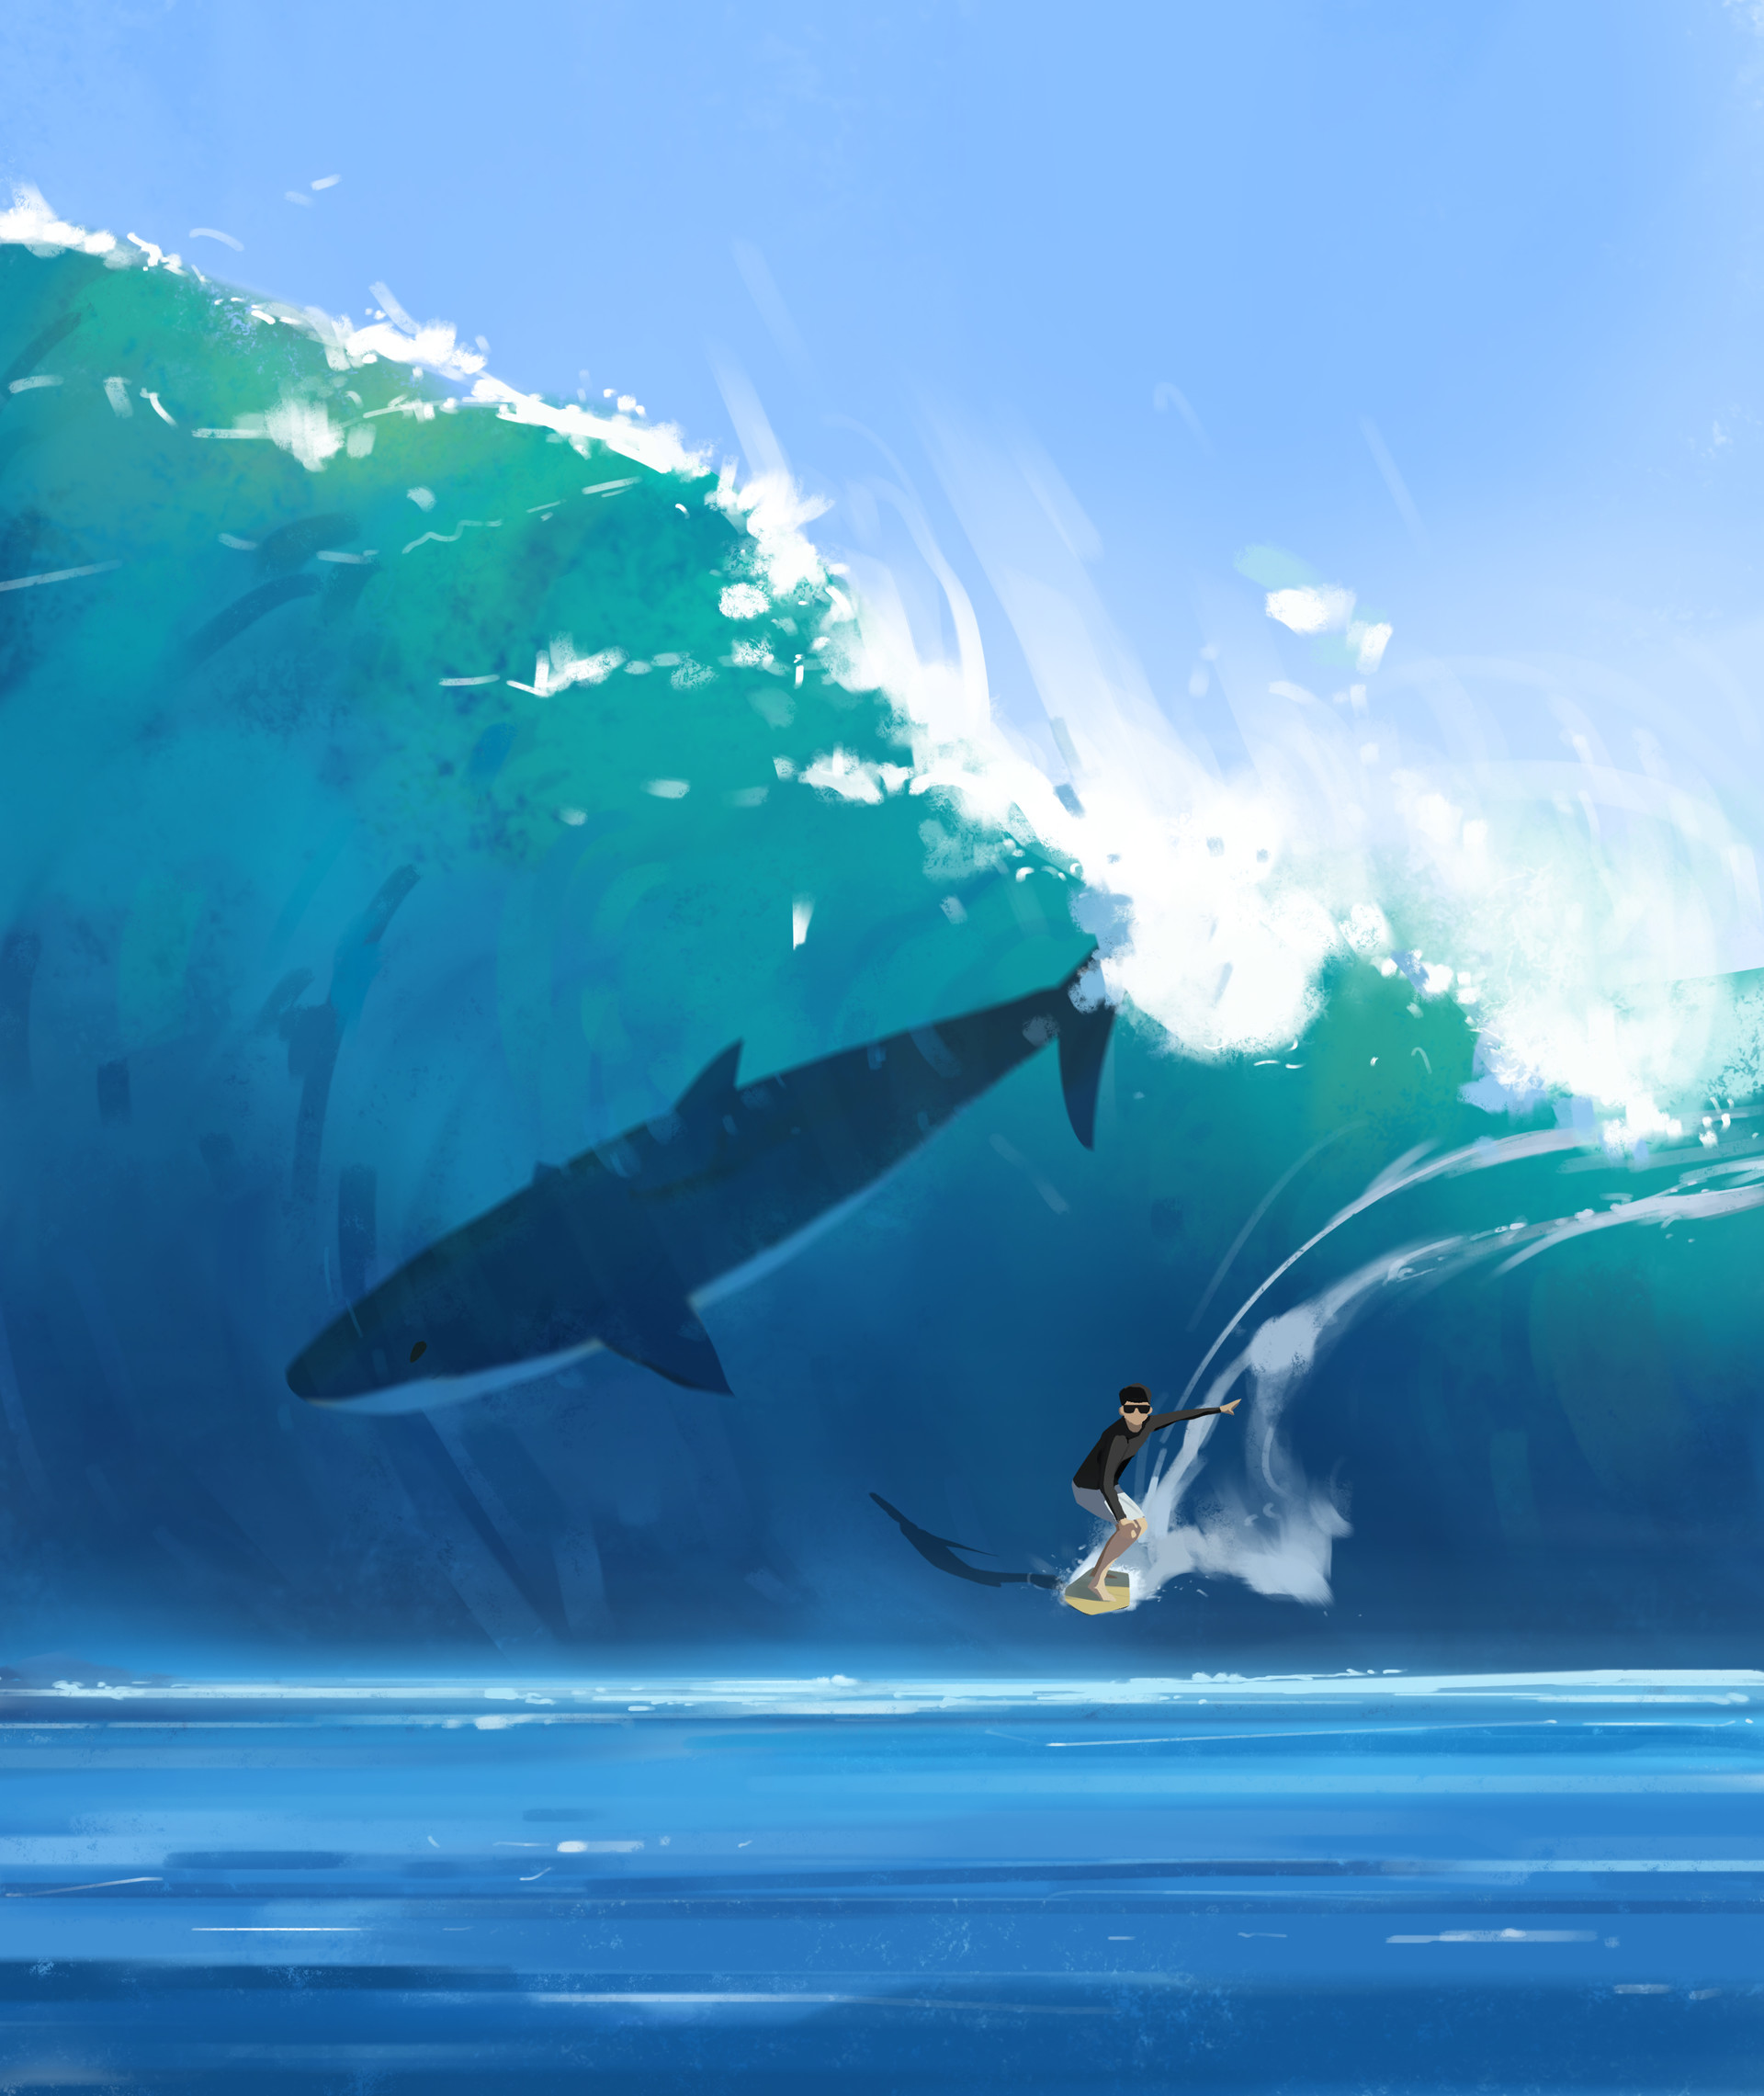 79090 download wallpaper Surfer, Serfing, Shark, Wave, Art screensavers and pictures for free